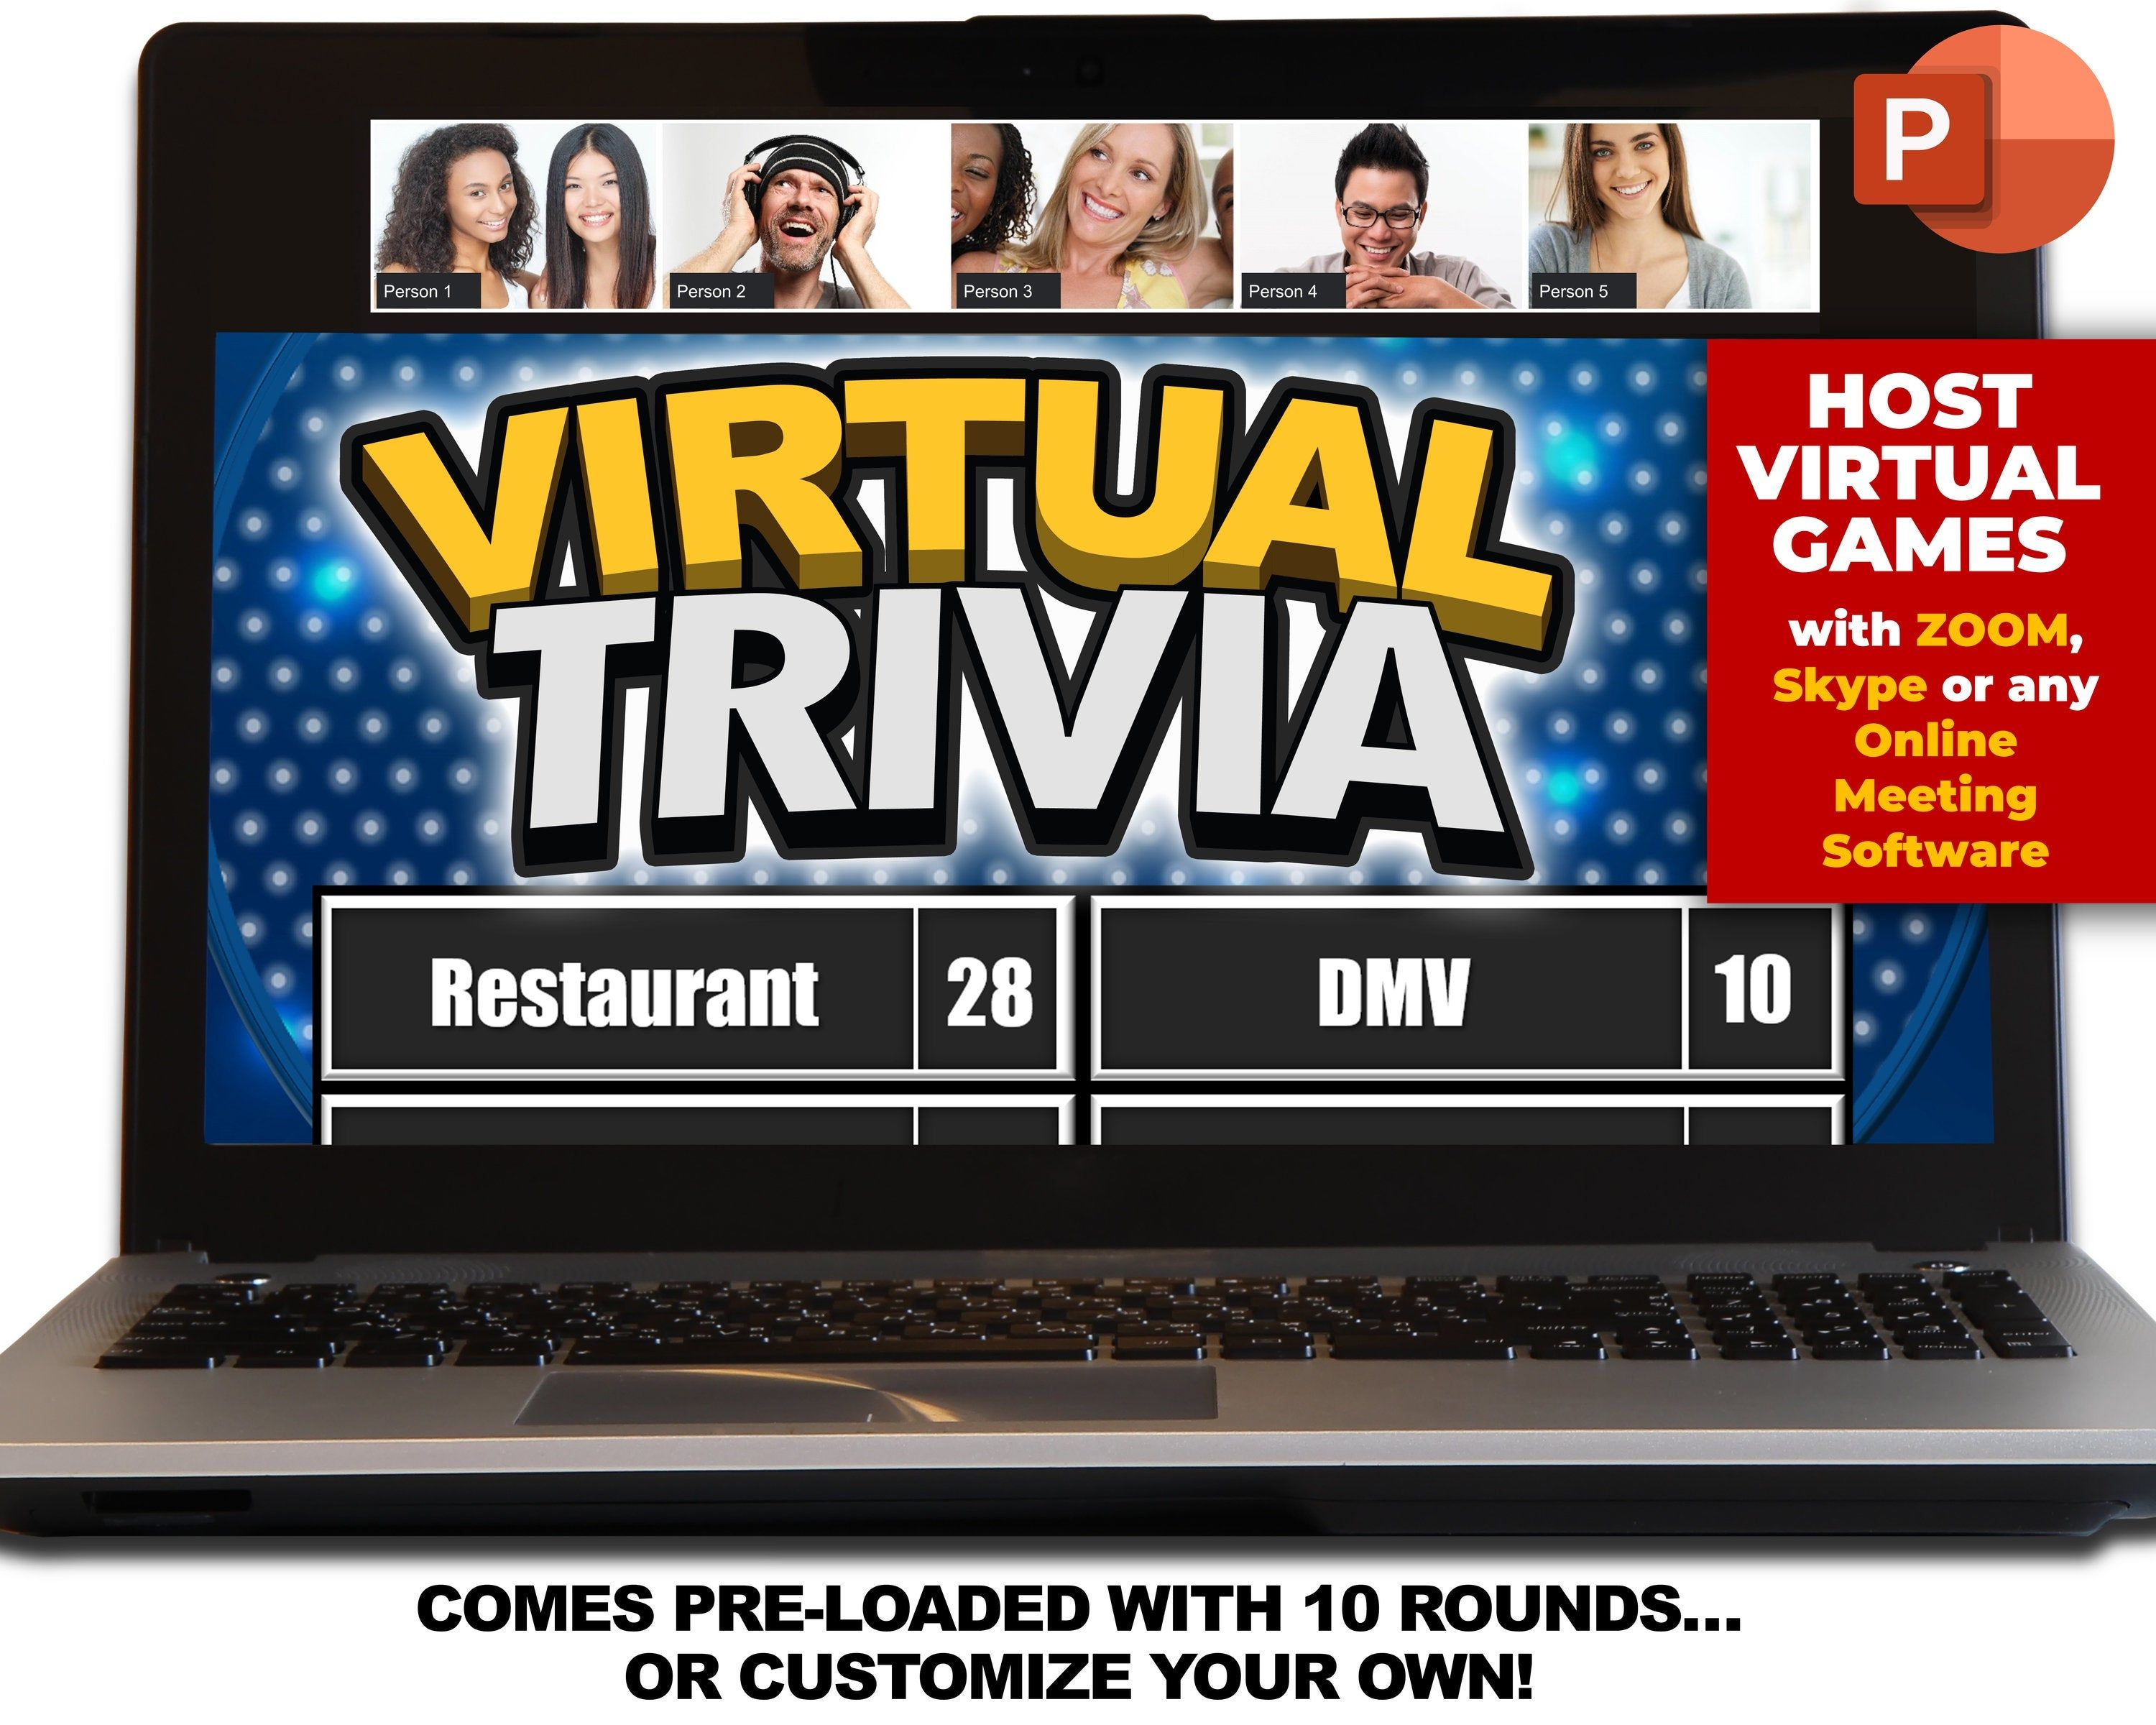 Virtual Trivia Party Game Download Play On Zoom Pc Mac Etsy In 2021 Internet Games Download Games Make Your Own Game